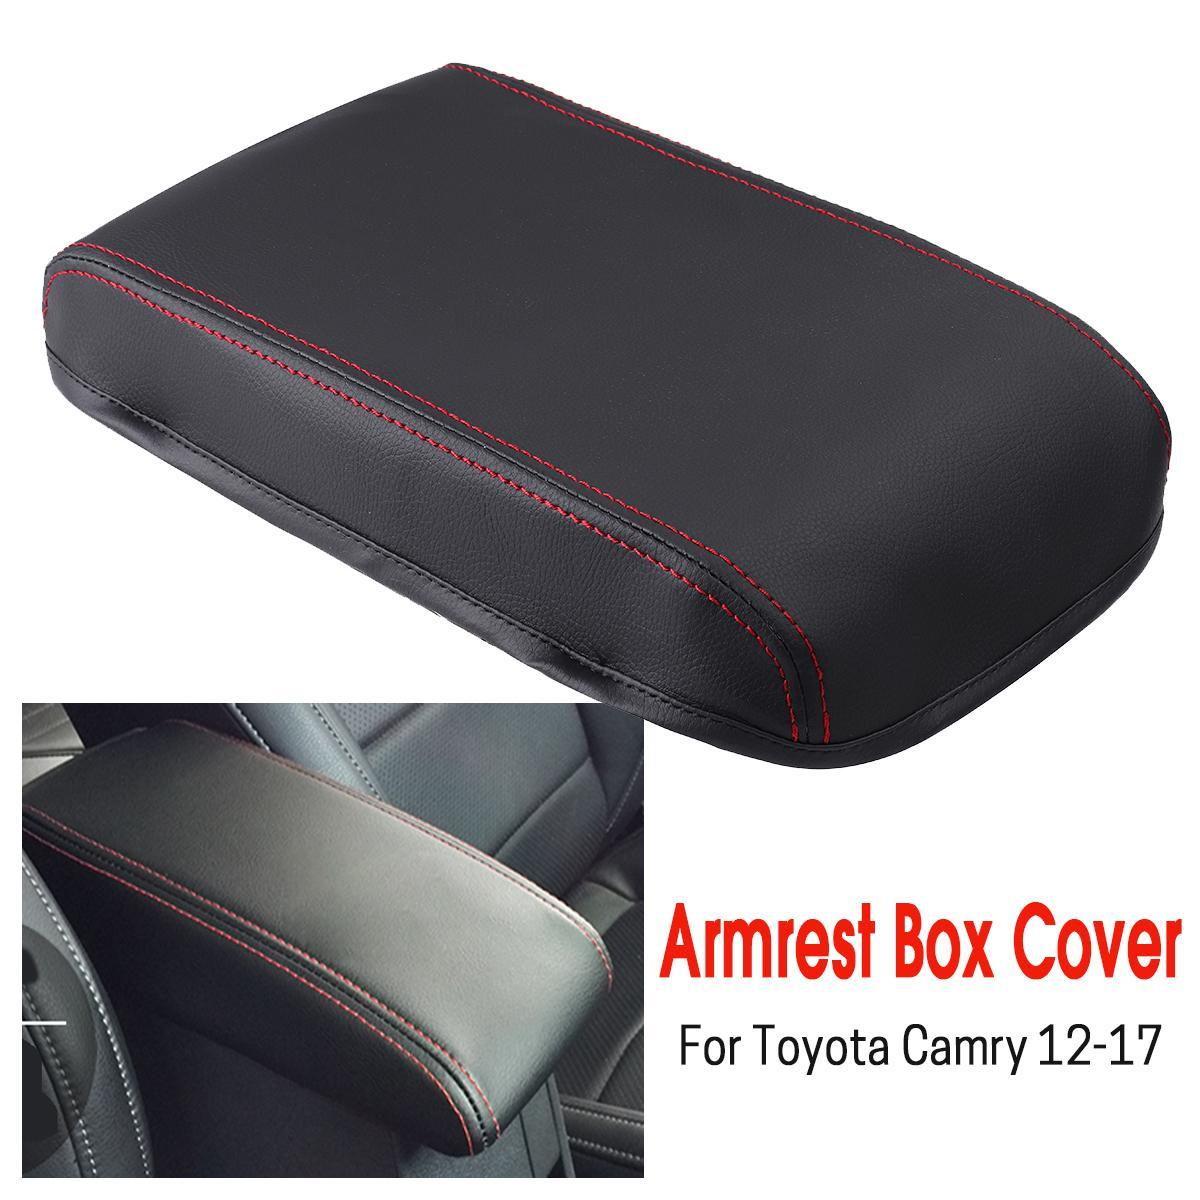 Car Center Console Armrest Box Cover DIY Leather Protection Pad for Toyota  Camry 2012 2013 2014 2015 2016 2017 #RED